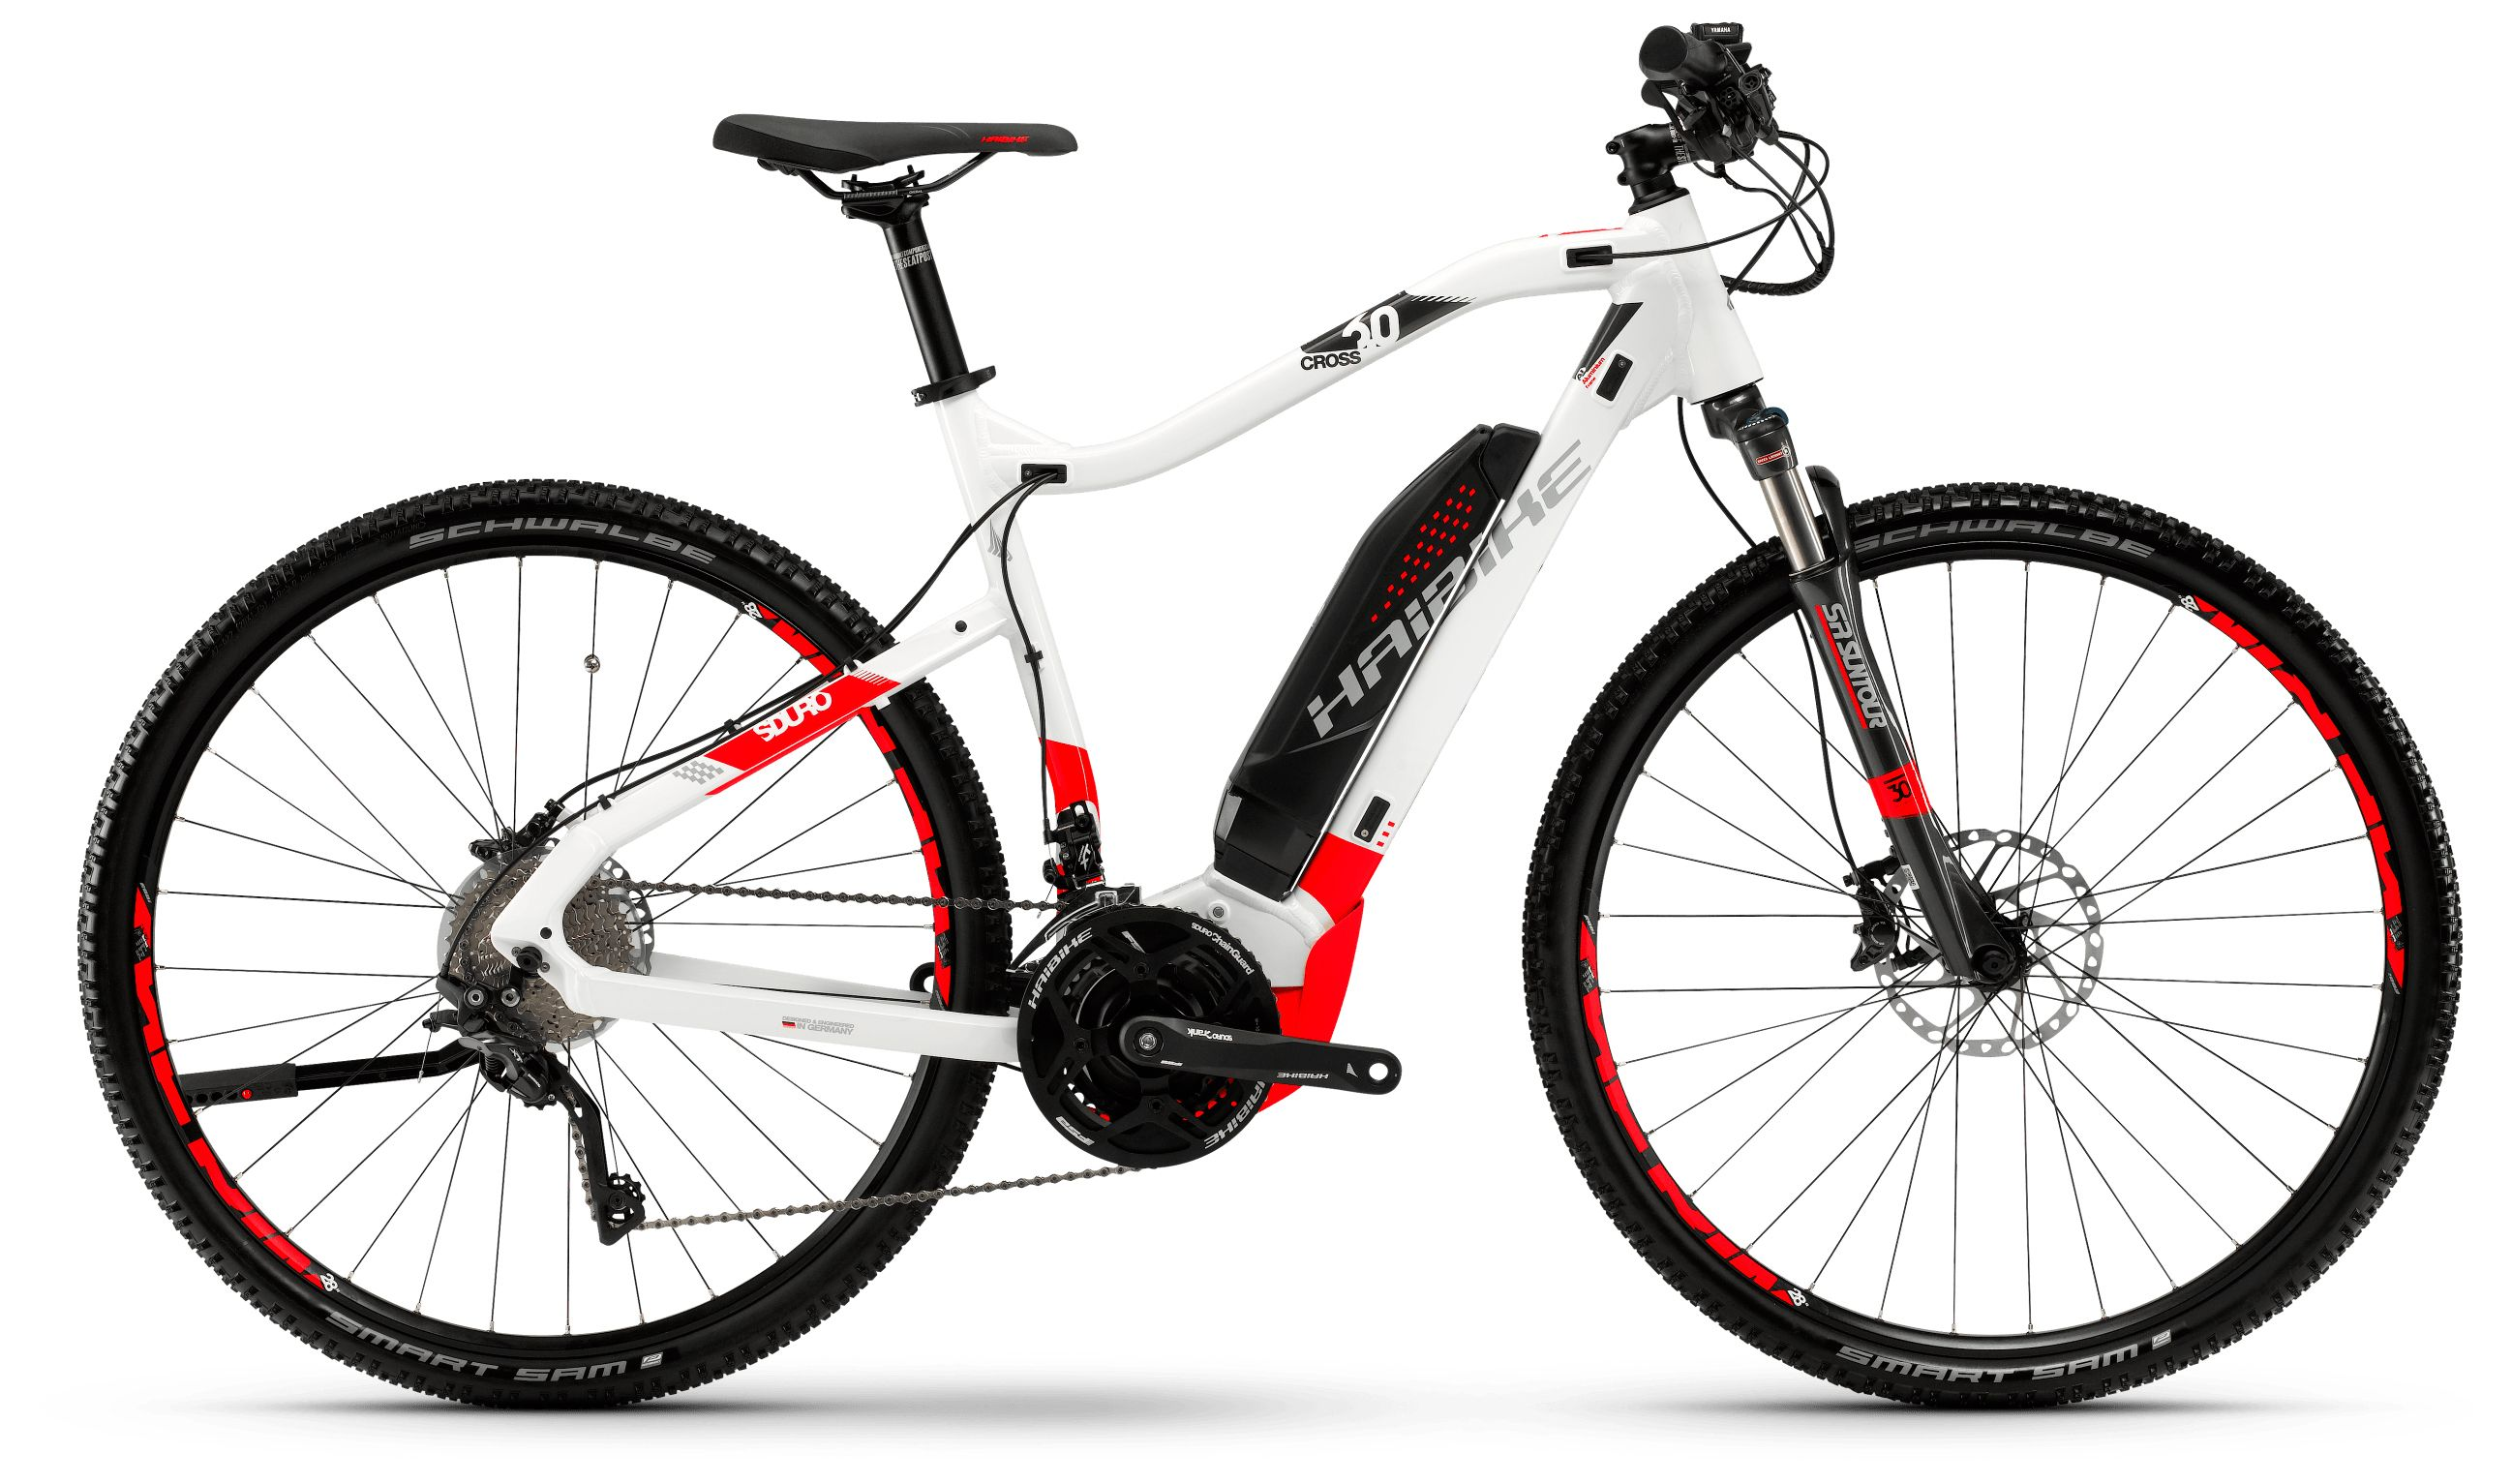 Велосипед Haibike Sduro Cross 6.0 men 500Wh 20s XT 2018